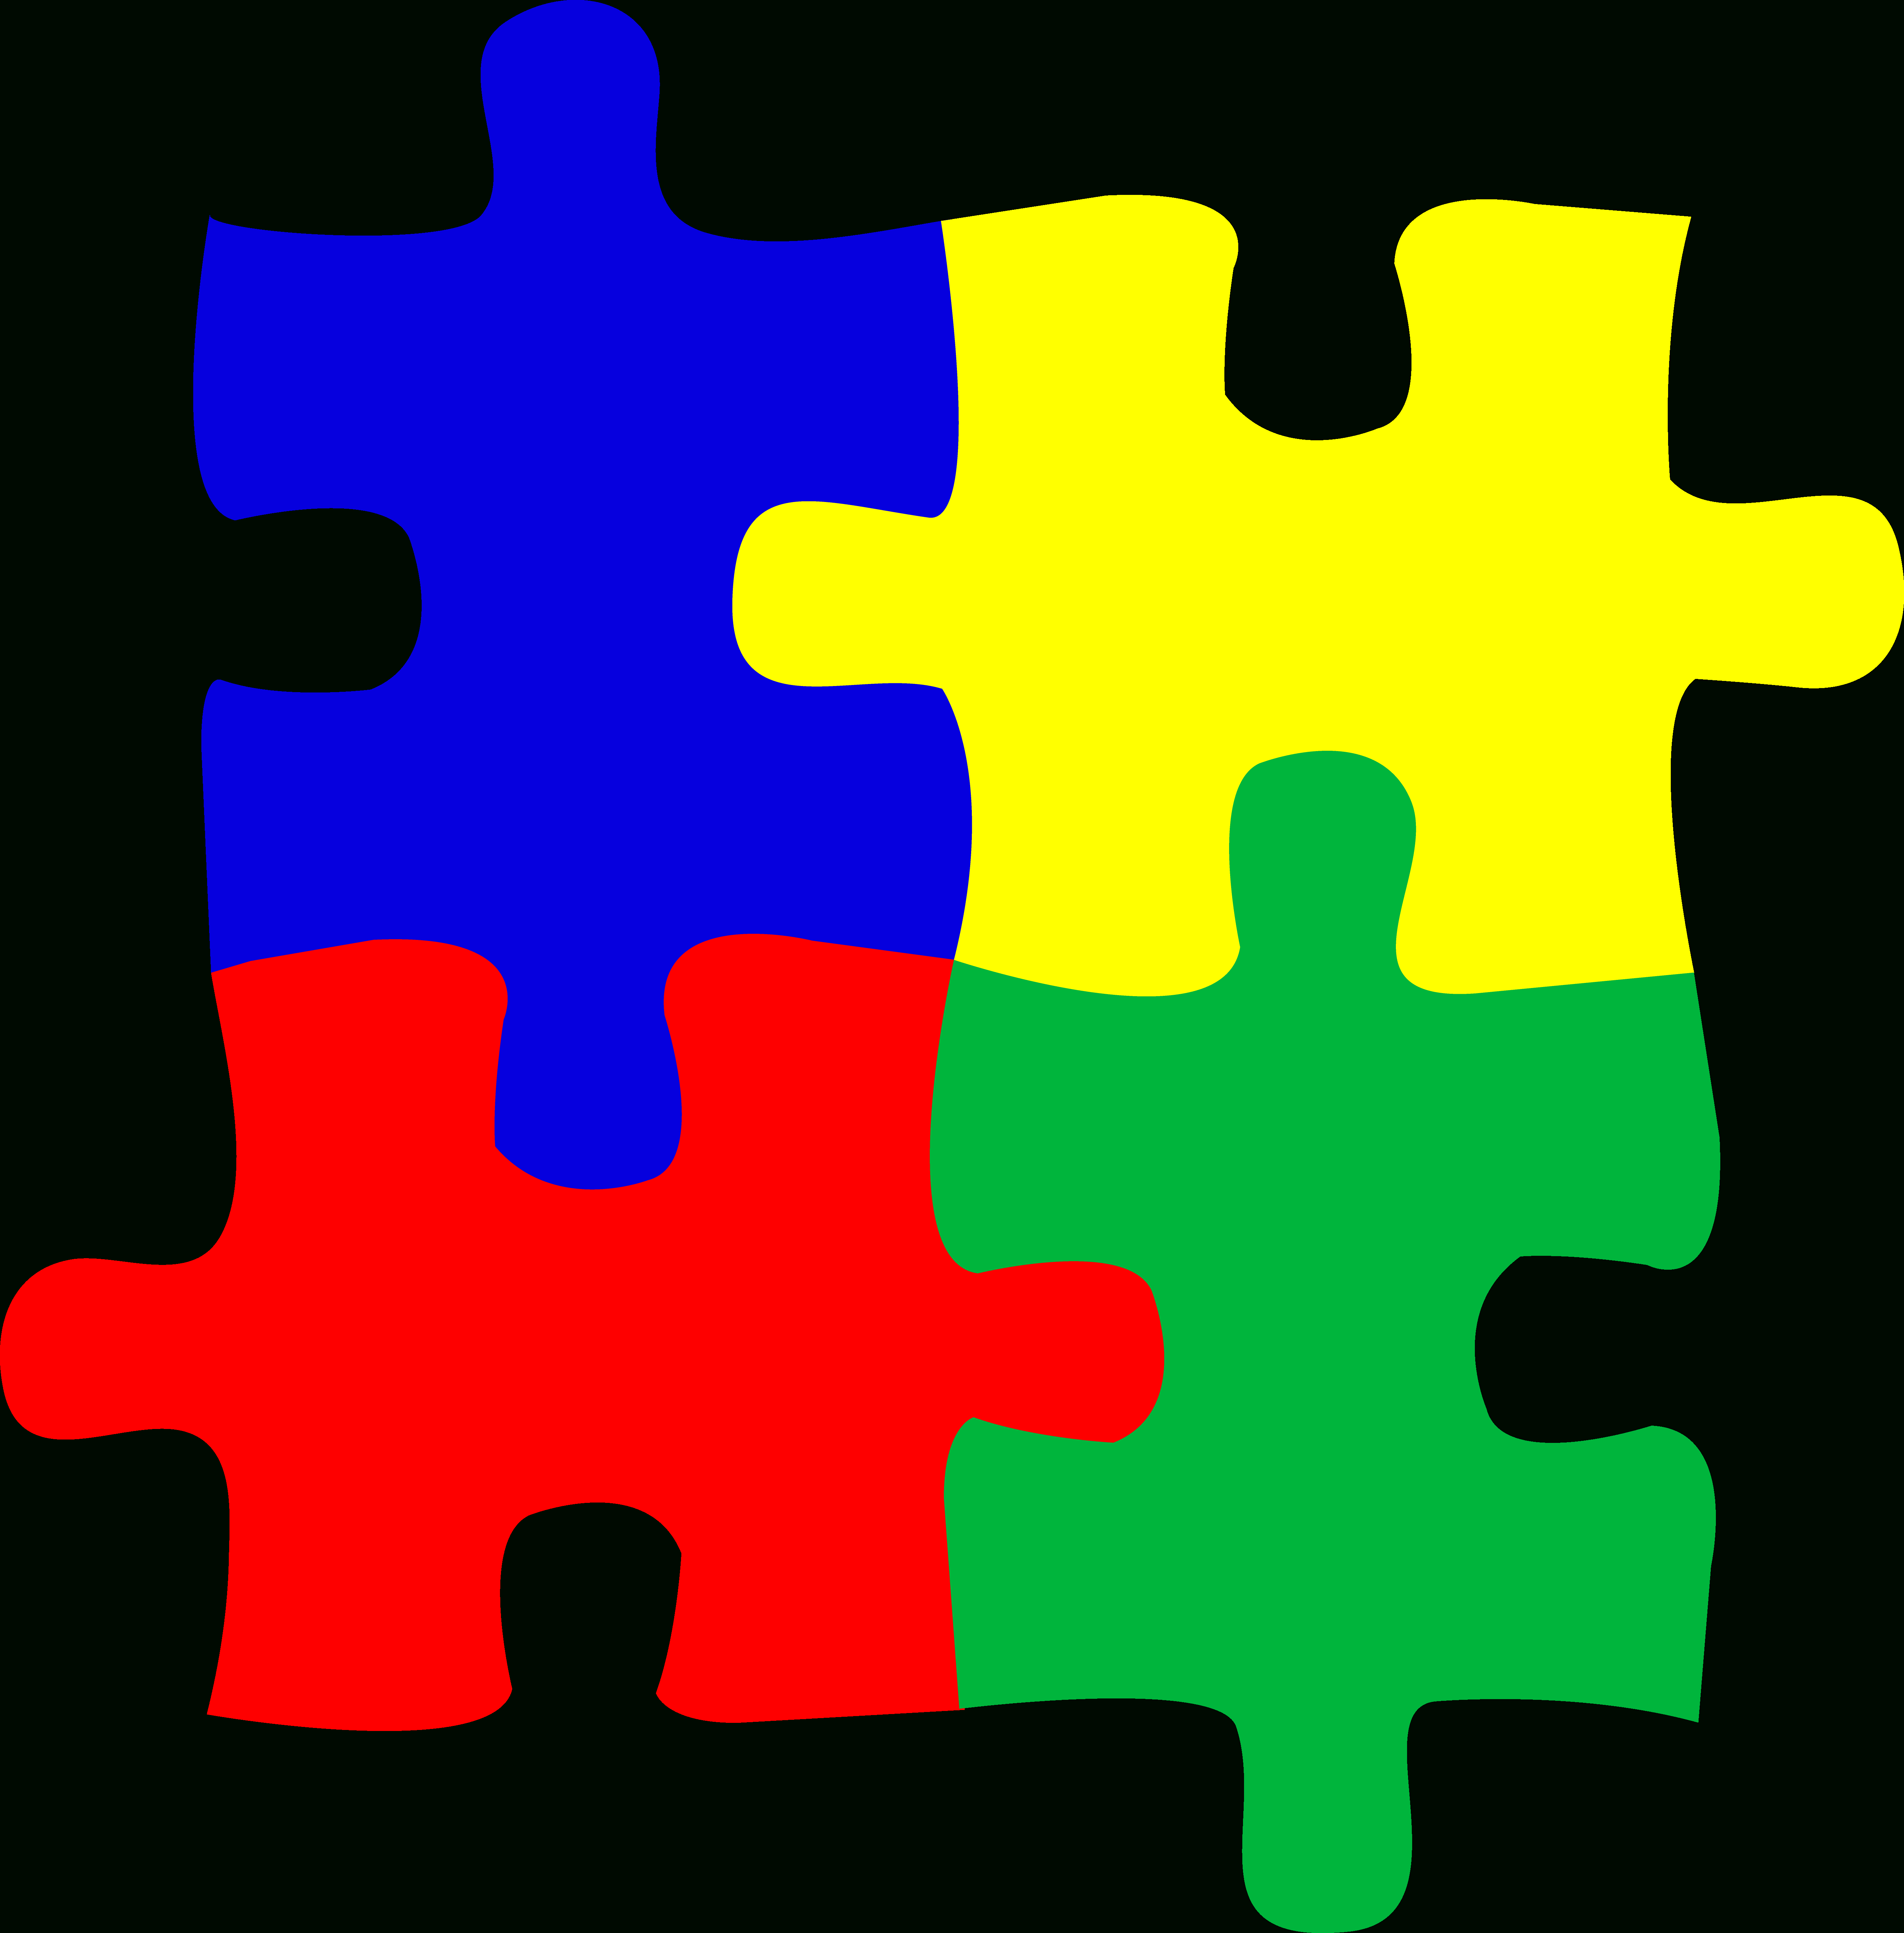 Free Jigsaw Puzzle Clipart, Download Free Clip Art, Free Clip Art On - 4 Piece Printable Puzzle